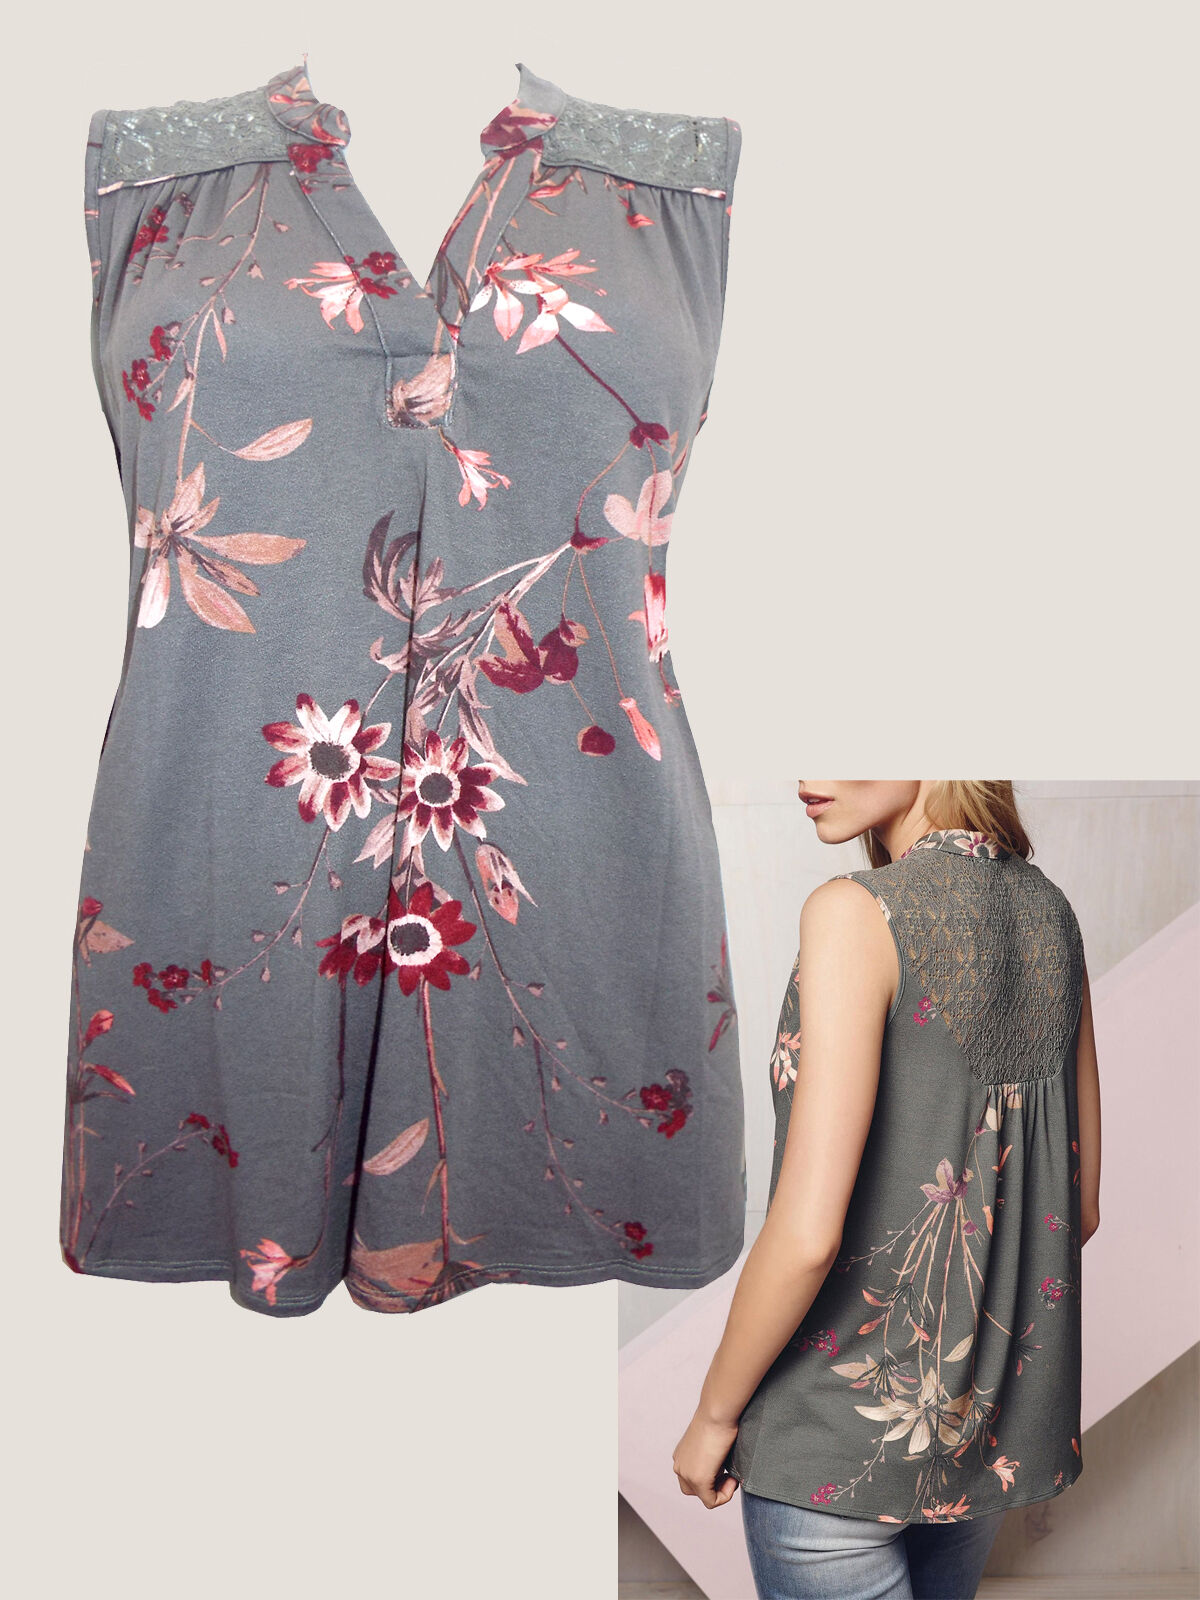 8112080bdce22 New NEXT Grey Floral Lace Sleeveless V Neck Stretch Casual Summer Top Size  8- 22